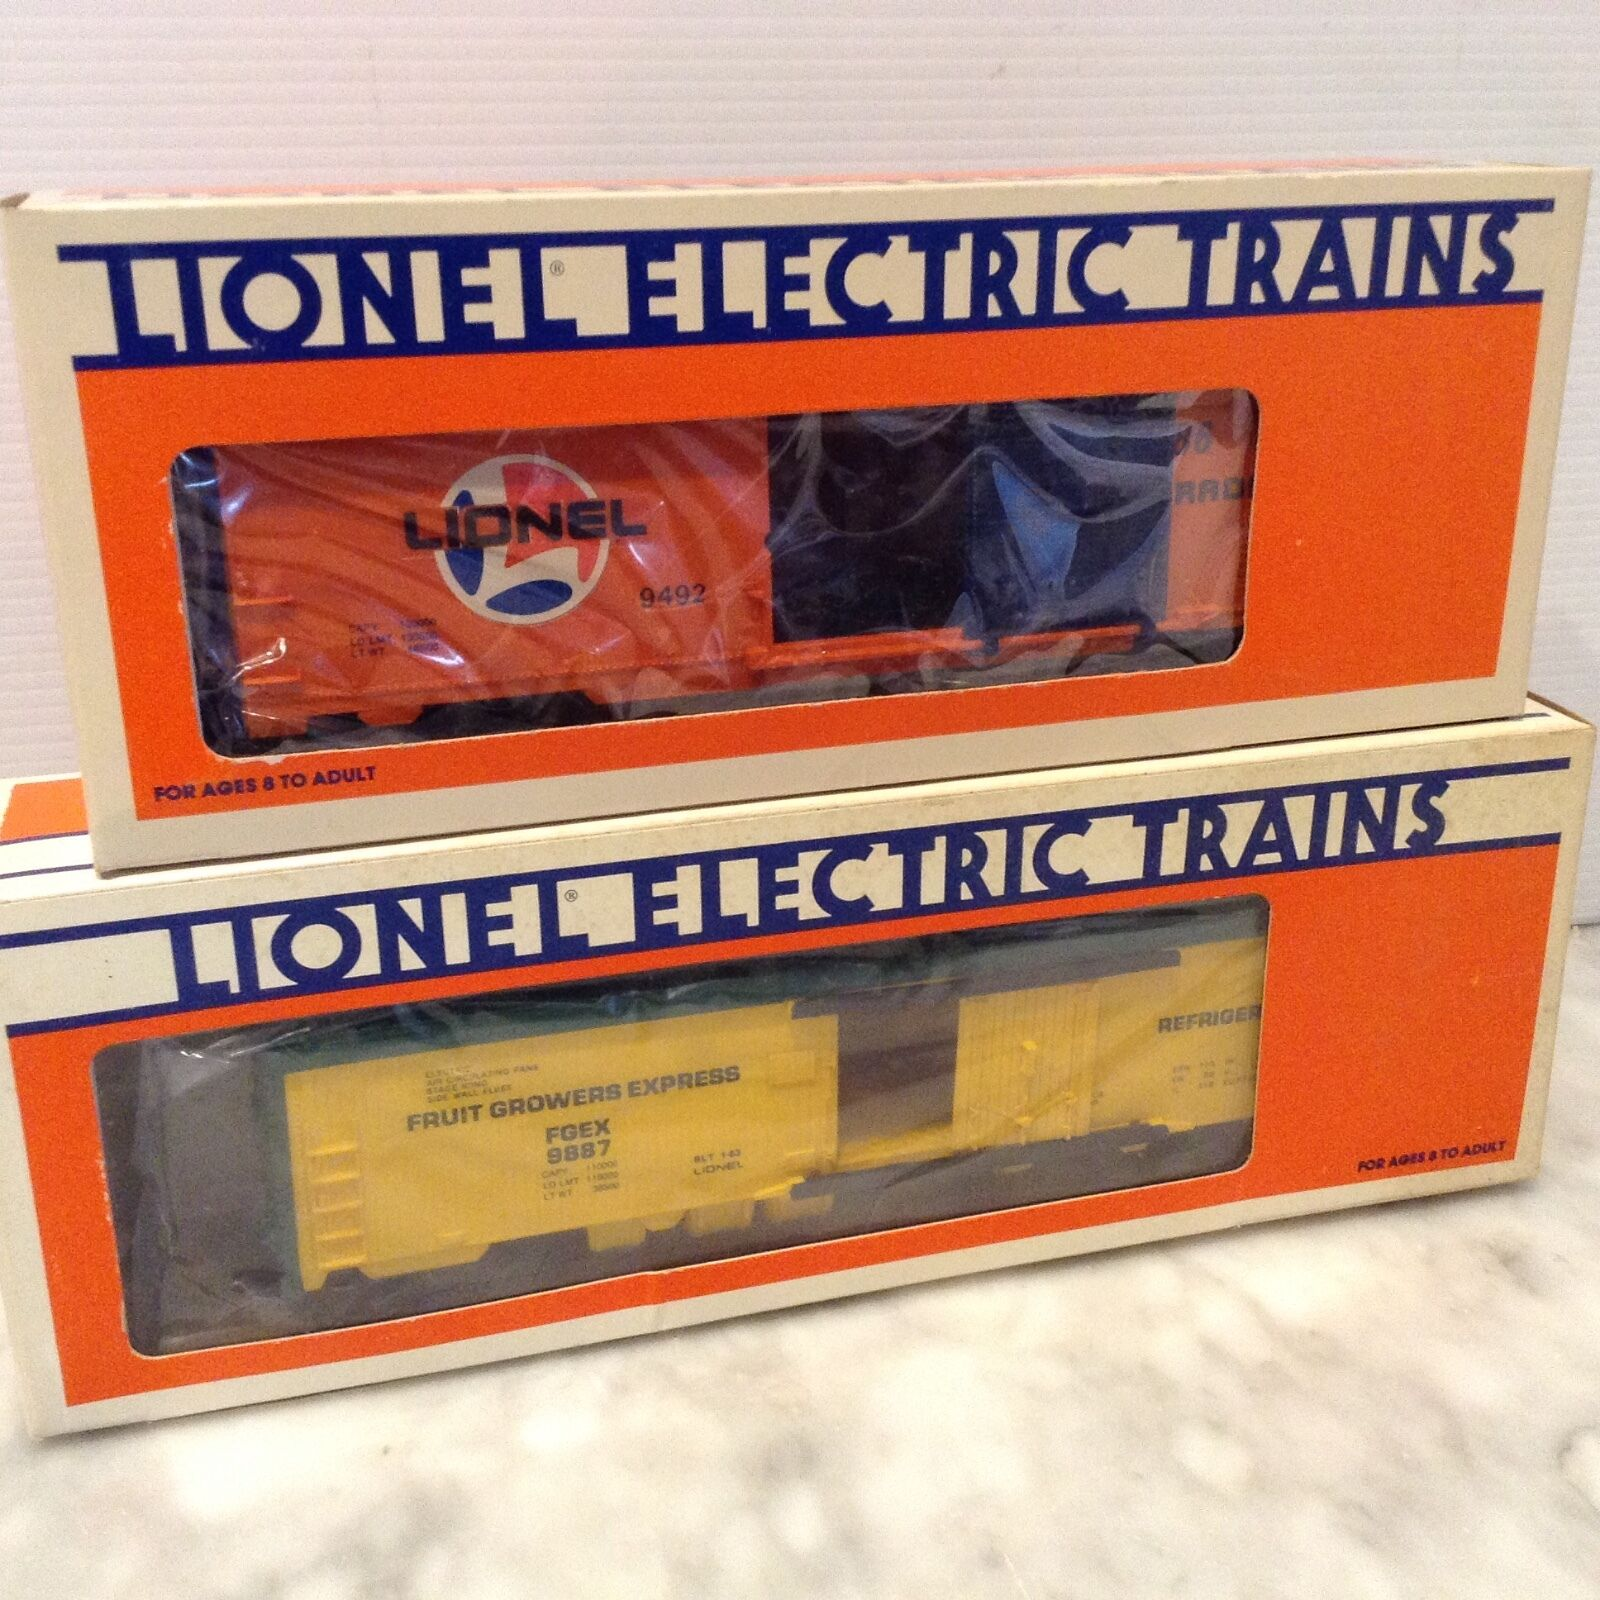 LIONEL 6-9887 EXPRESS REEFER FRUIT GROWERS CAR &6-9492 BOX CAR -NEW IN BOX